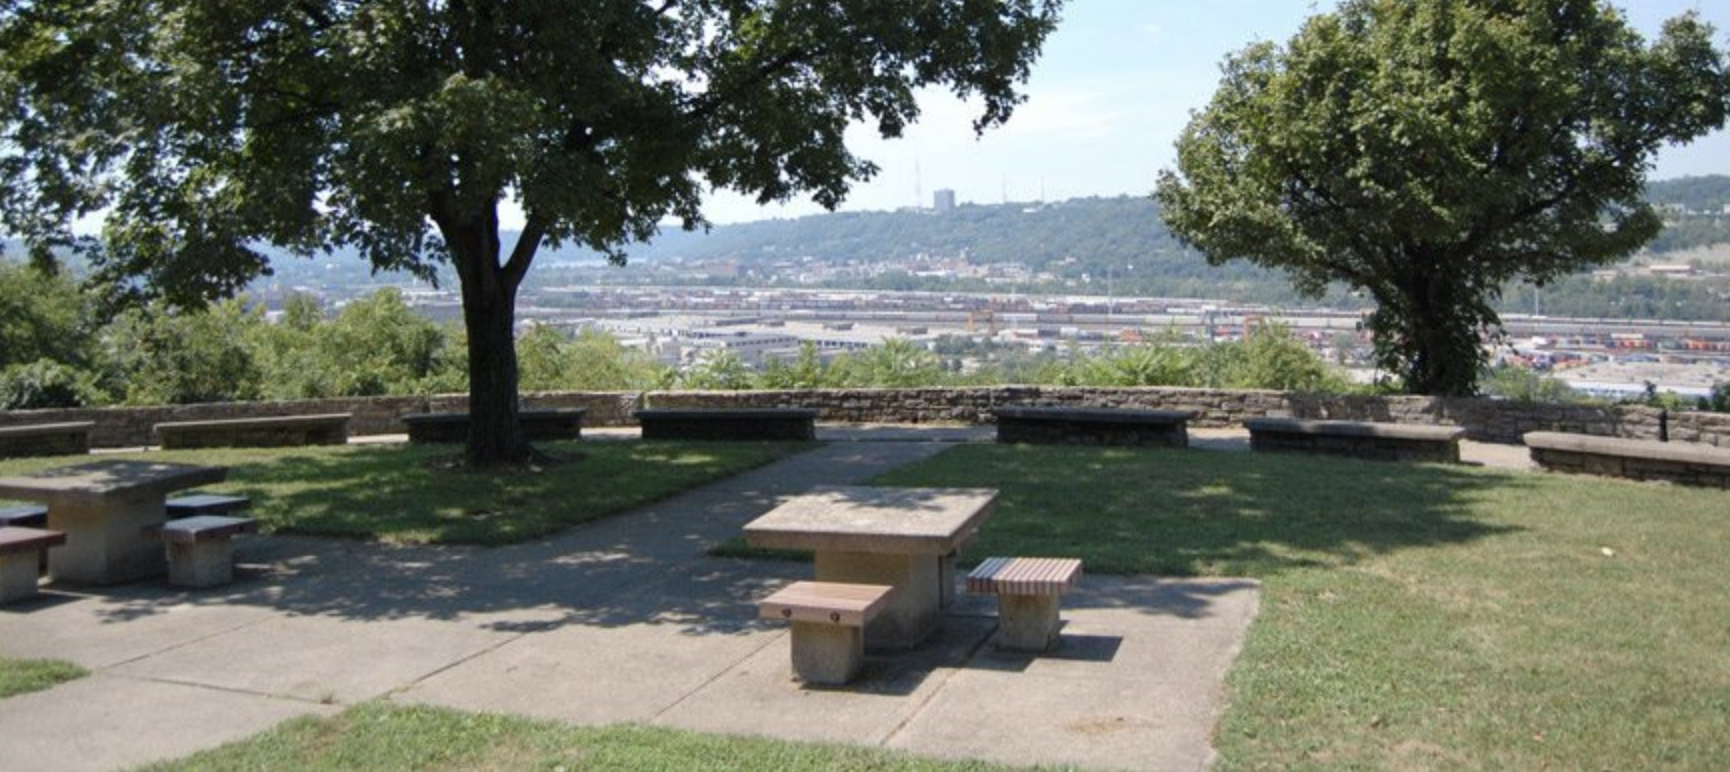 Fairview Park's overlook onto Cincinnati.  Image from:  cincinnatiparks.com/central/fairview-park/